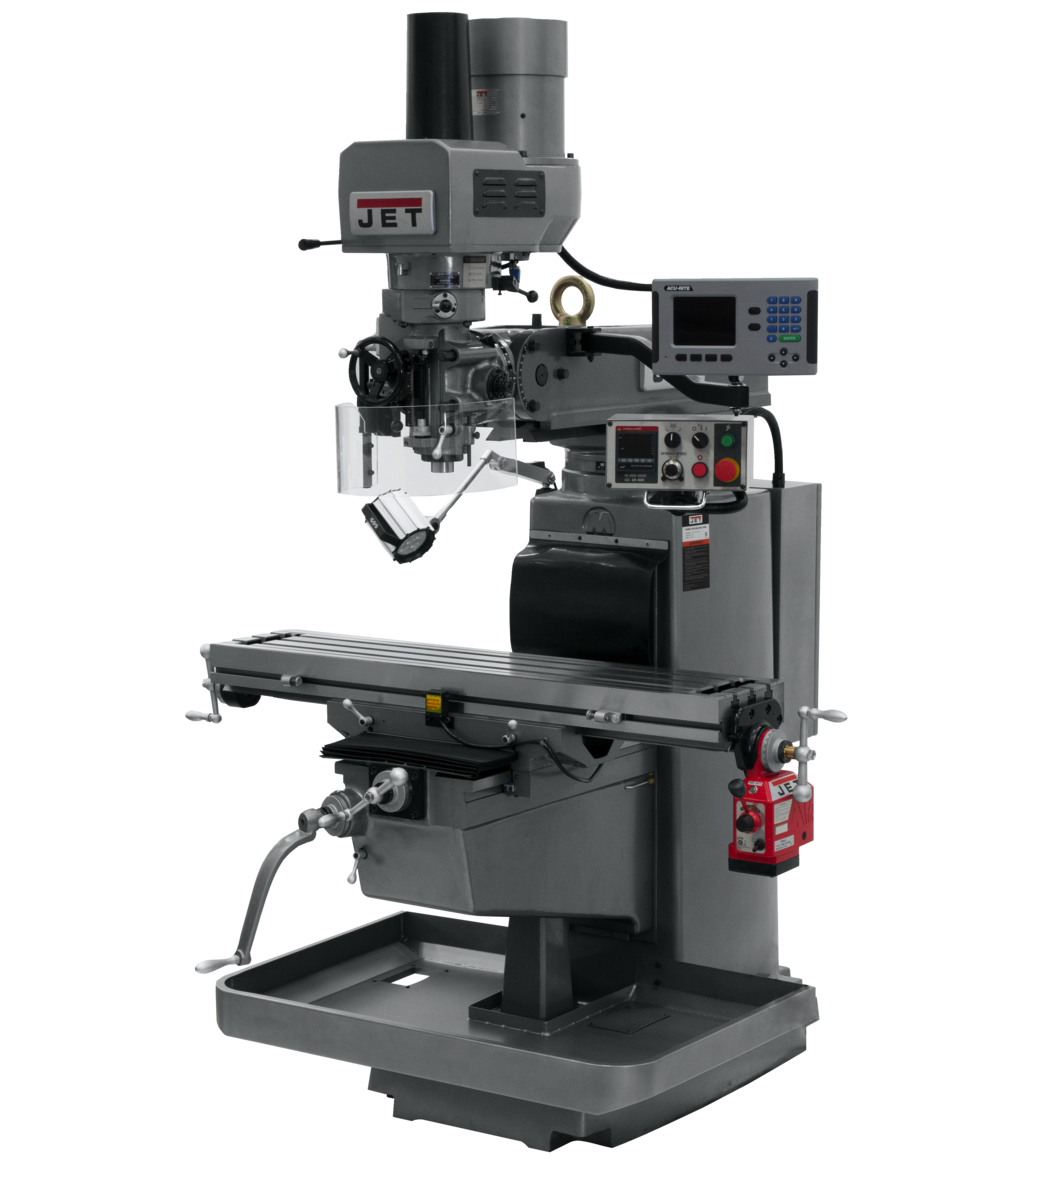 JTM-1050EVS2/230 Mill With 3-Axis Acu-Rite 203DRO (Quill) With X-Axis Powerfeed and Air Powered Draw Bar